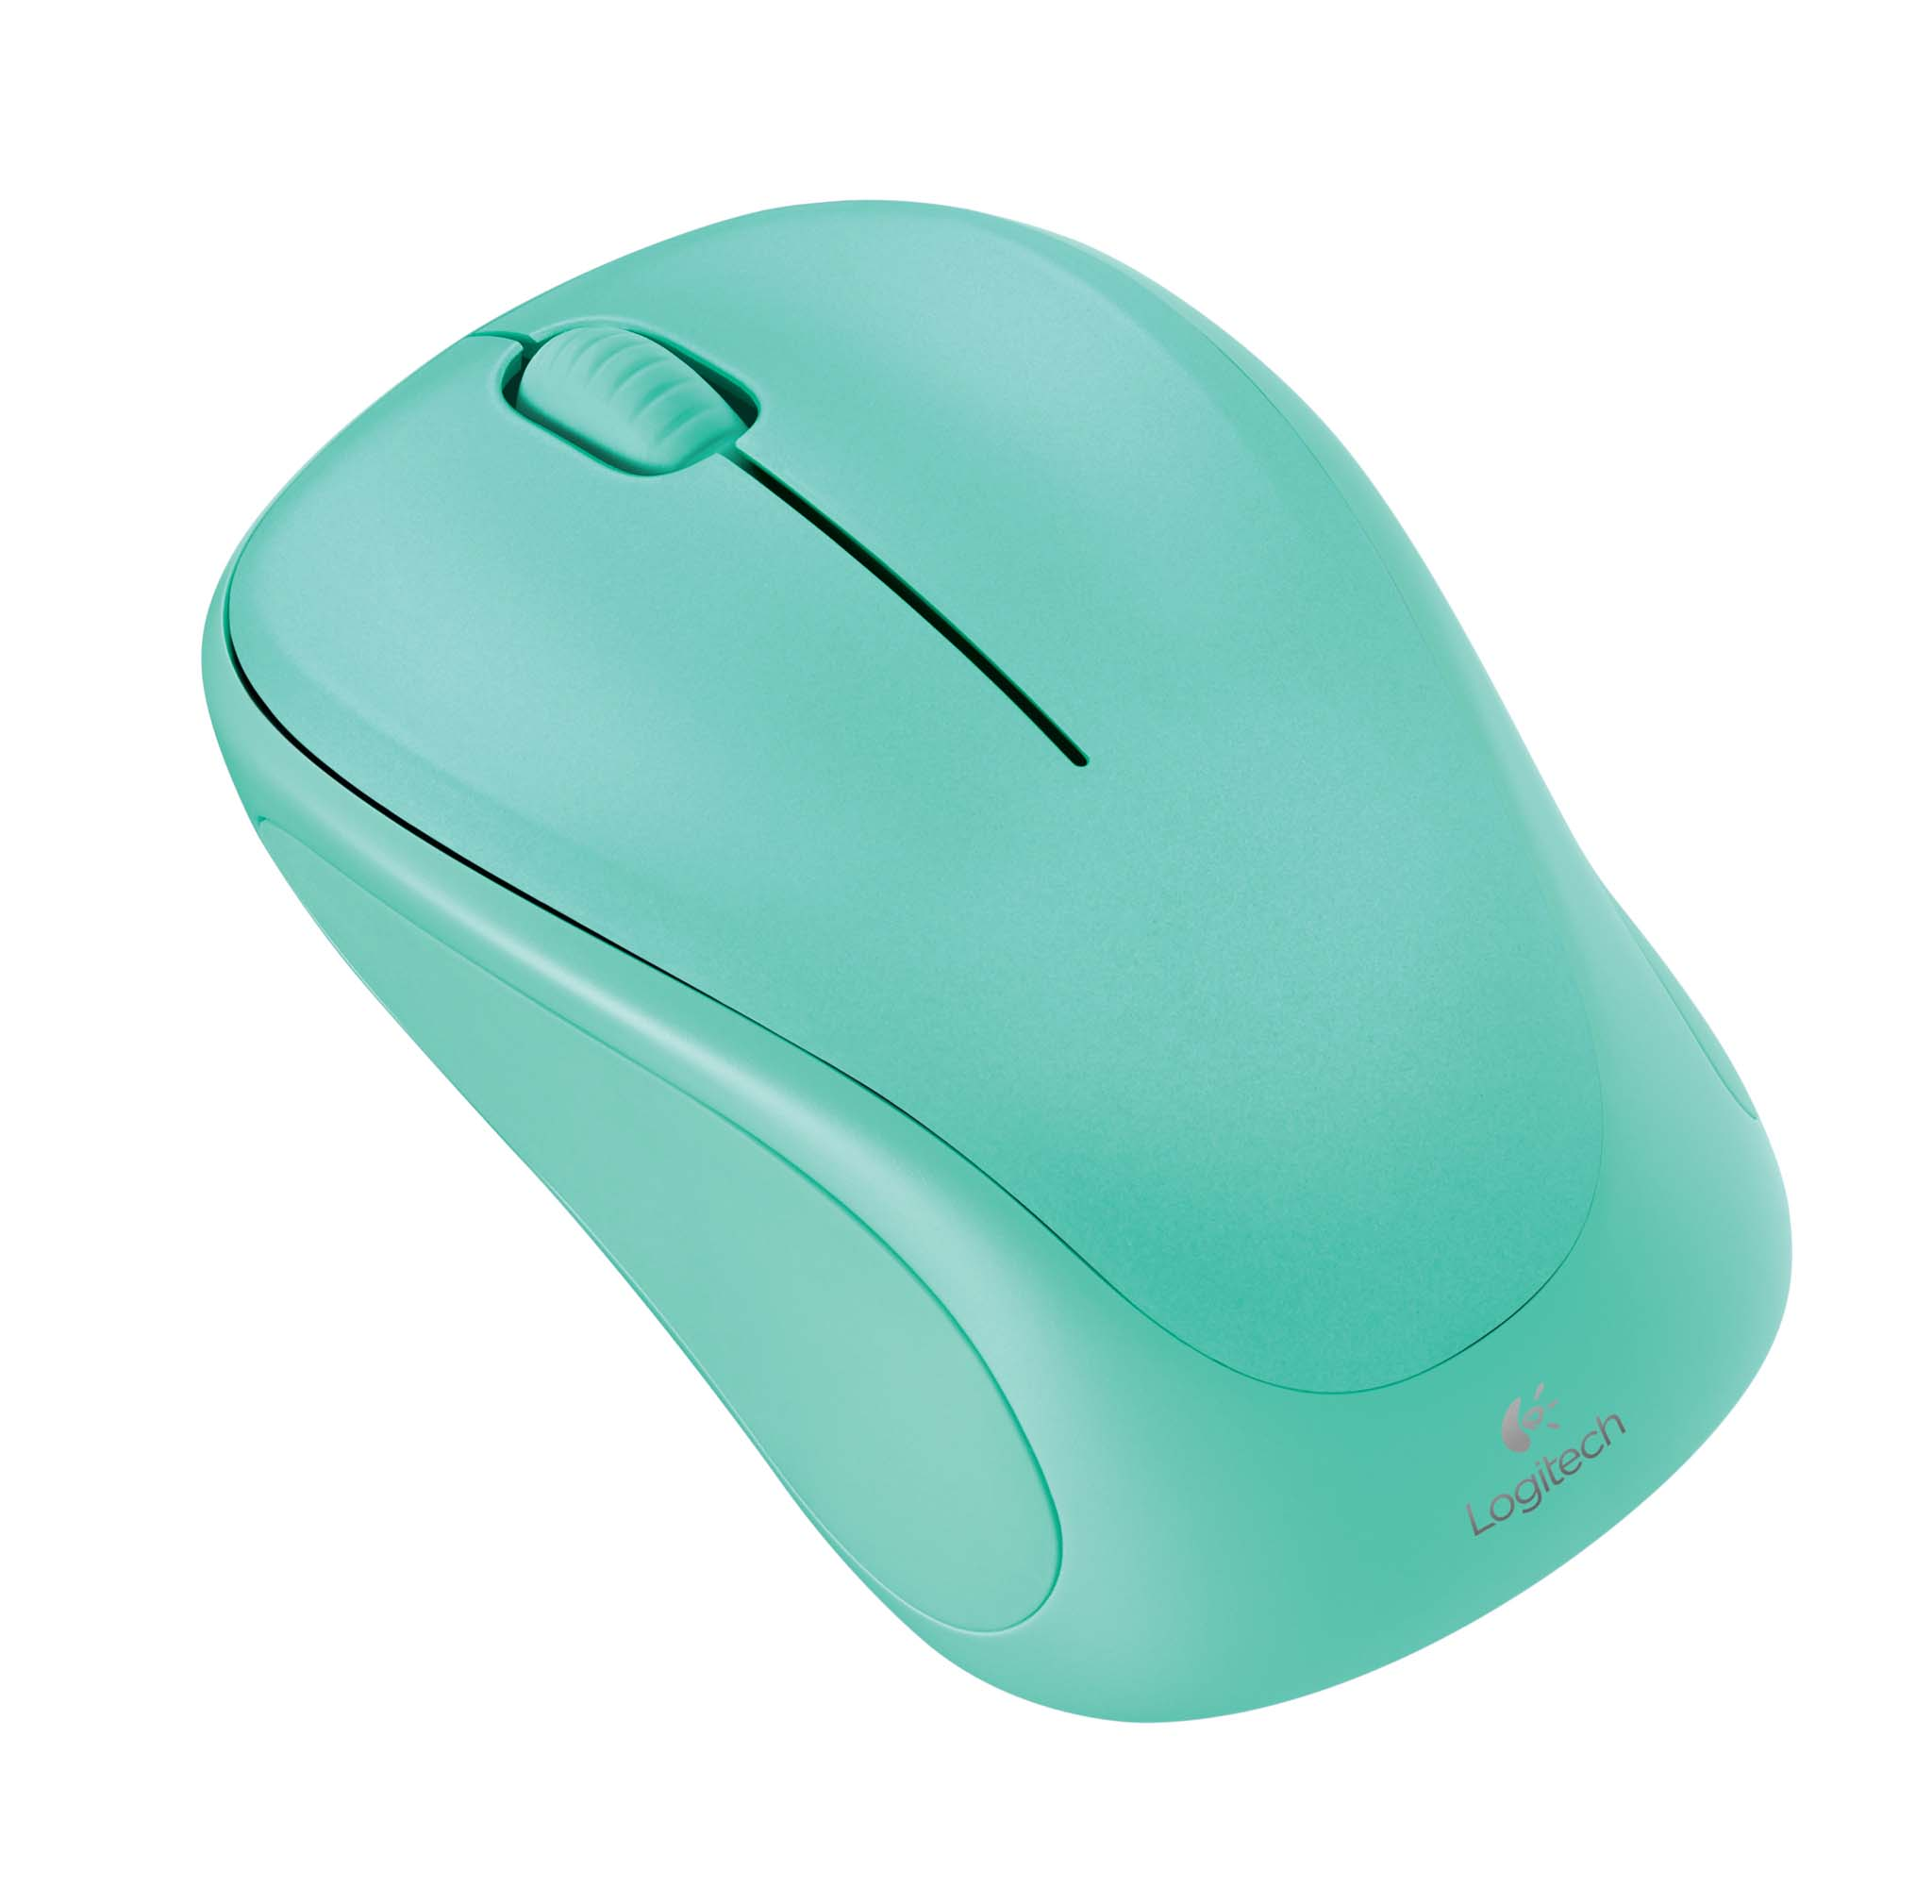 Express Yourself in Style with the 2014 Logitech Color Collection